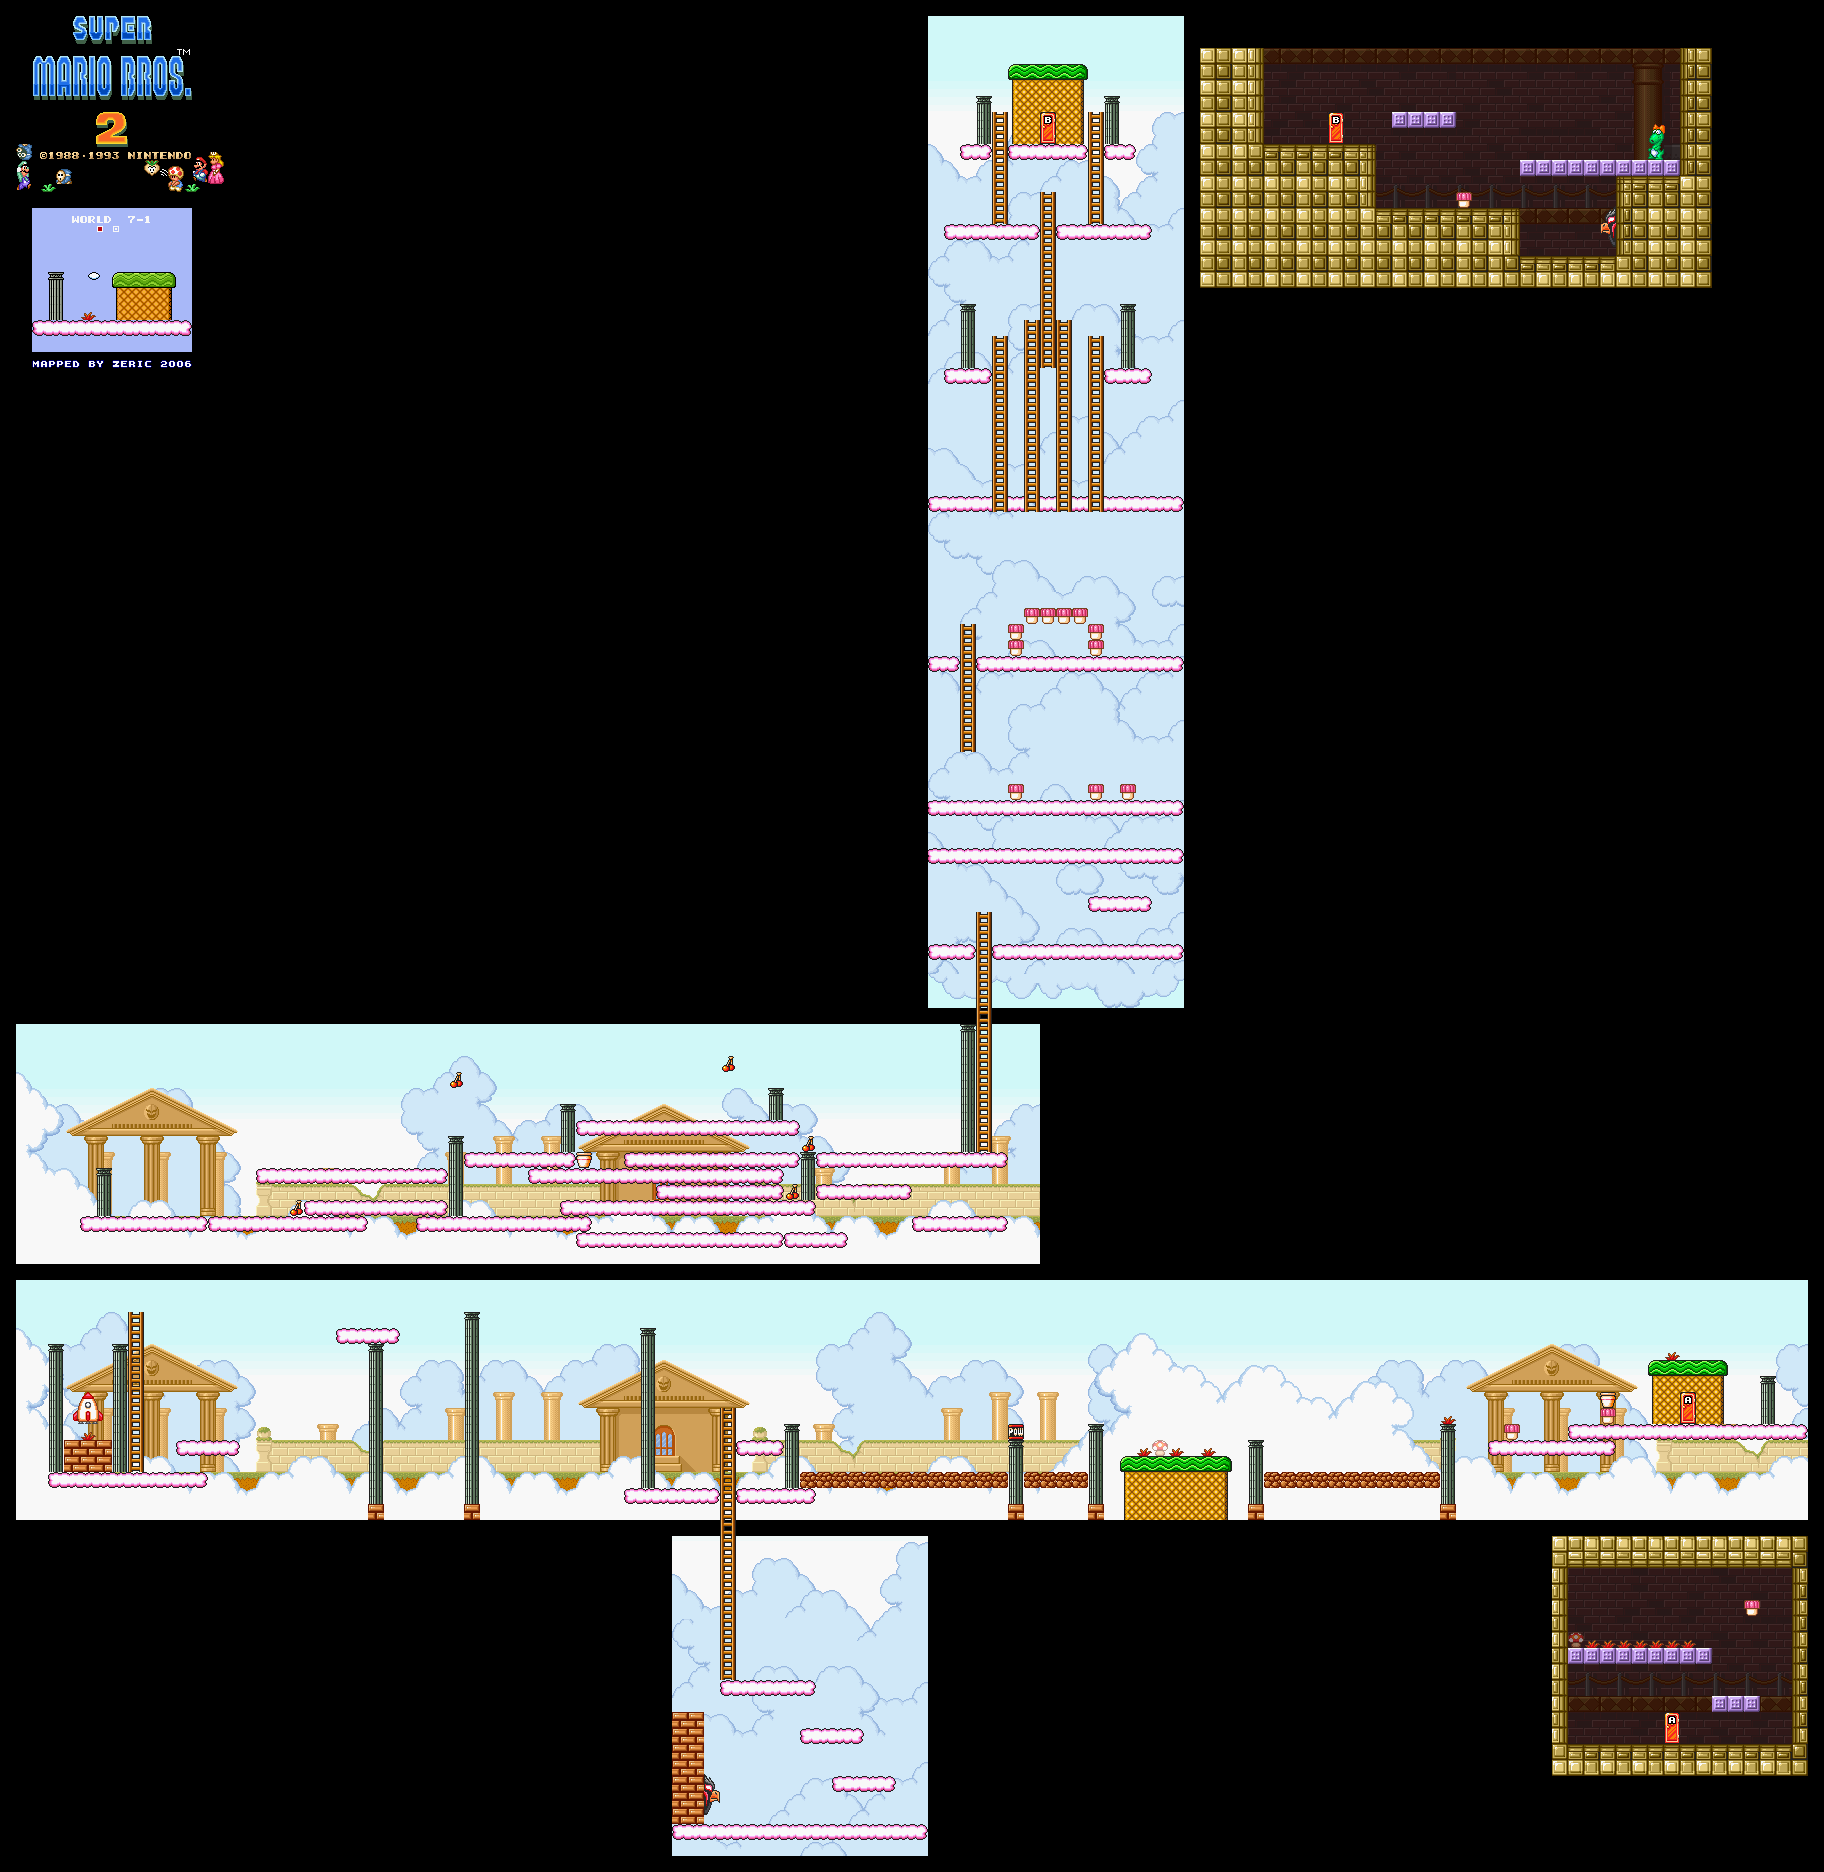 Super Mario All Stars - Super Mario Bros 2 - Snes Game Maps